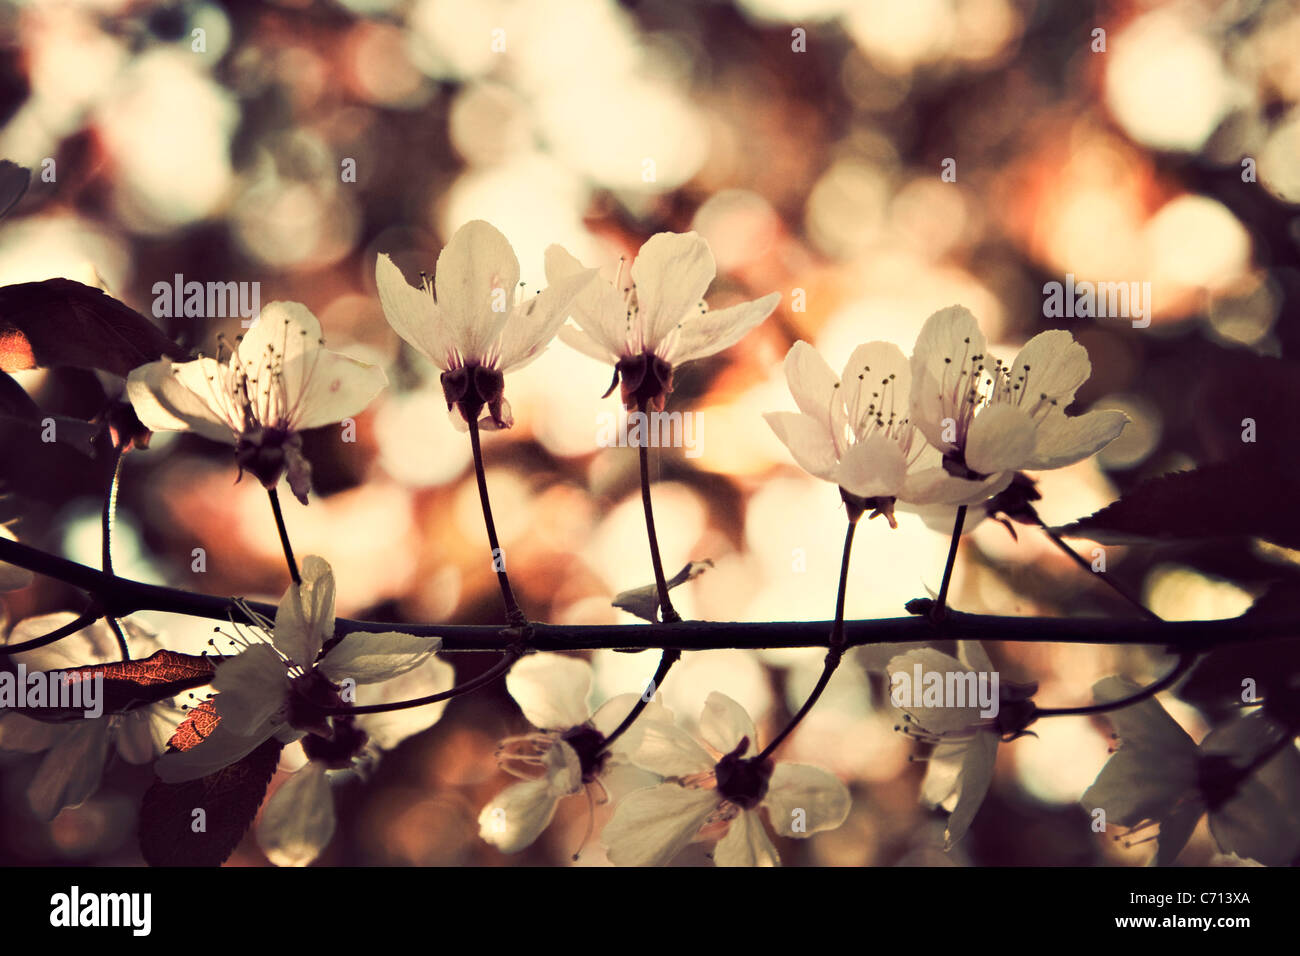 Prunus, Cherry, Pink flower blossom on tree branch subject, Stock Photo